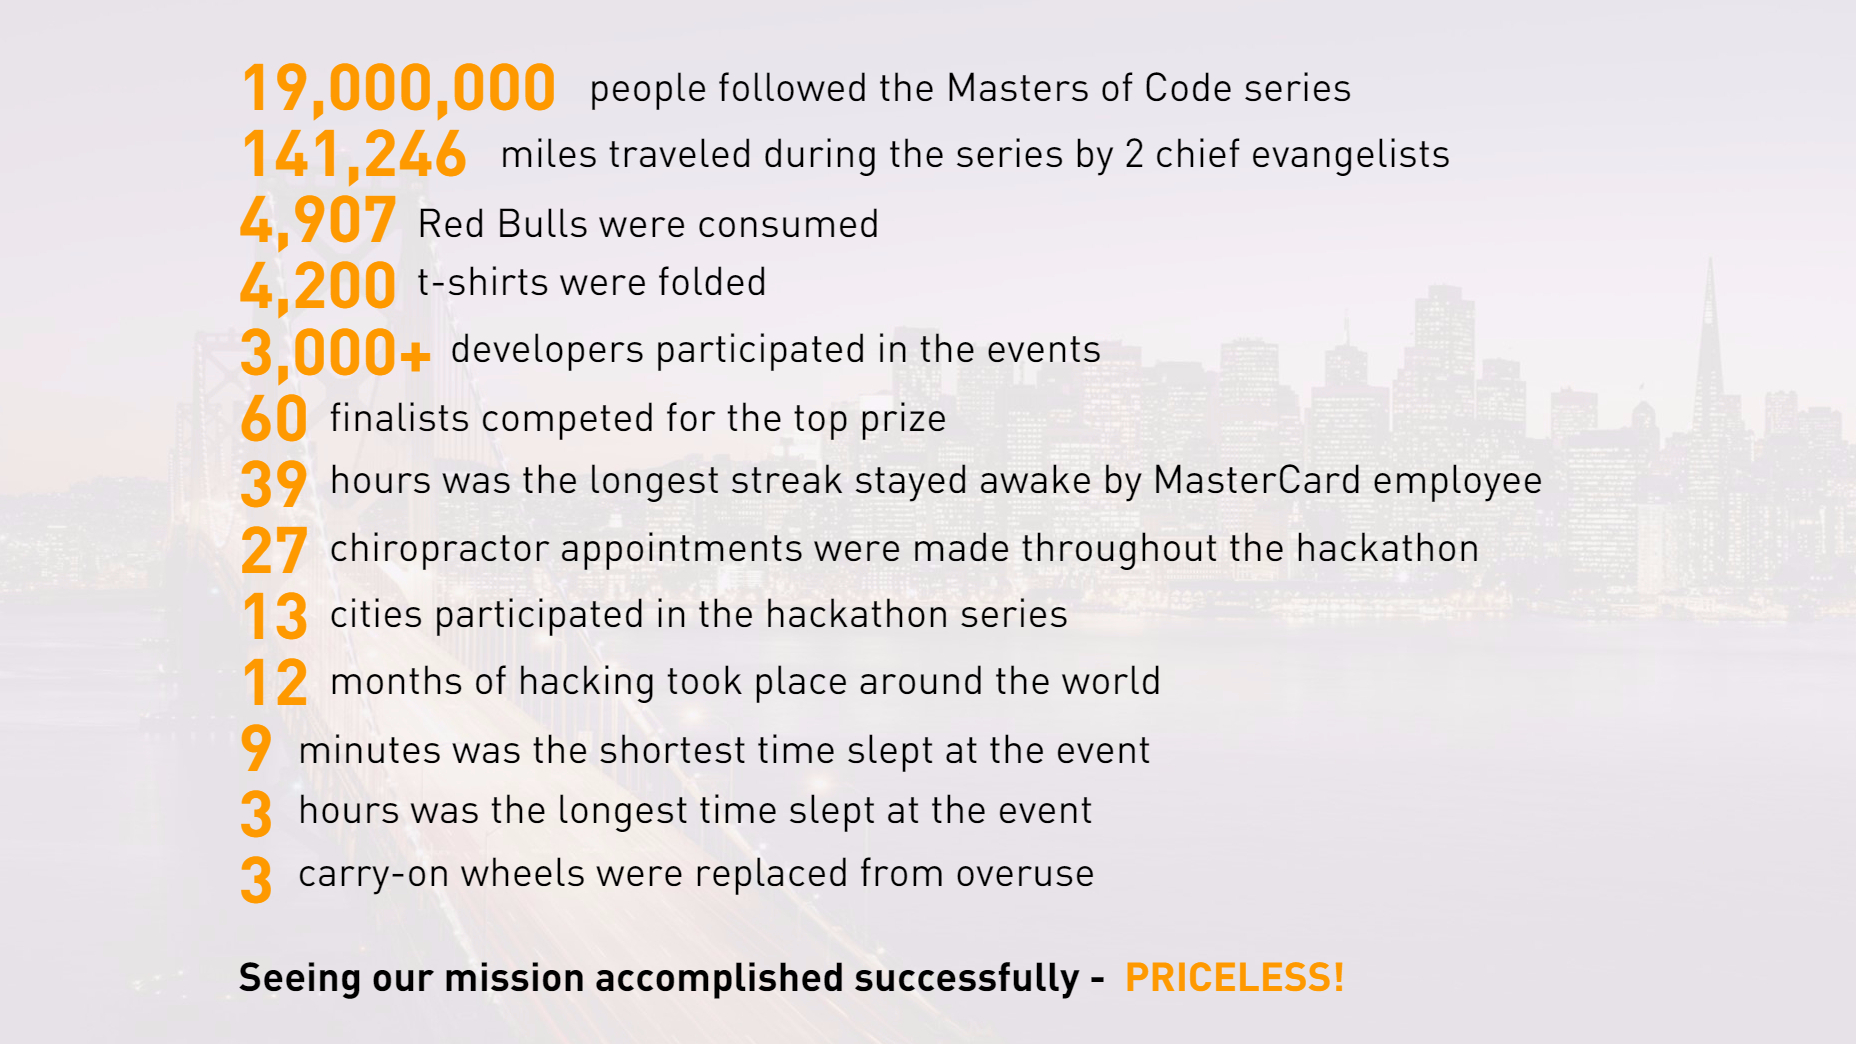 Masters of Code infographic